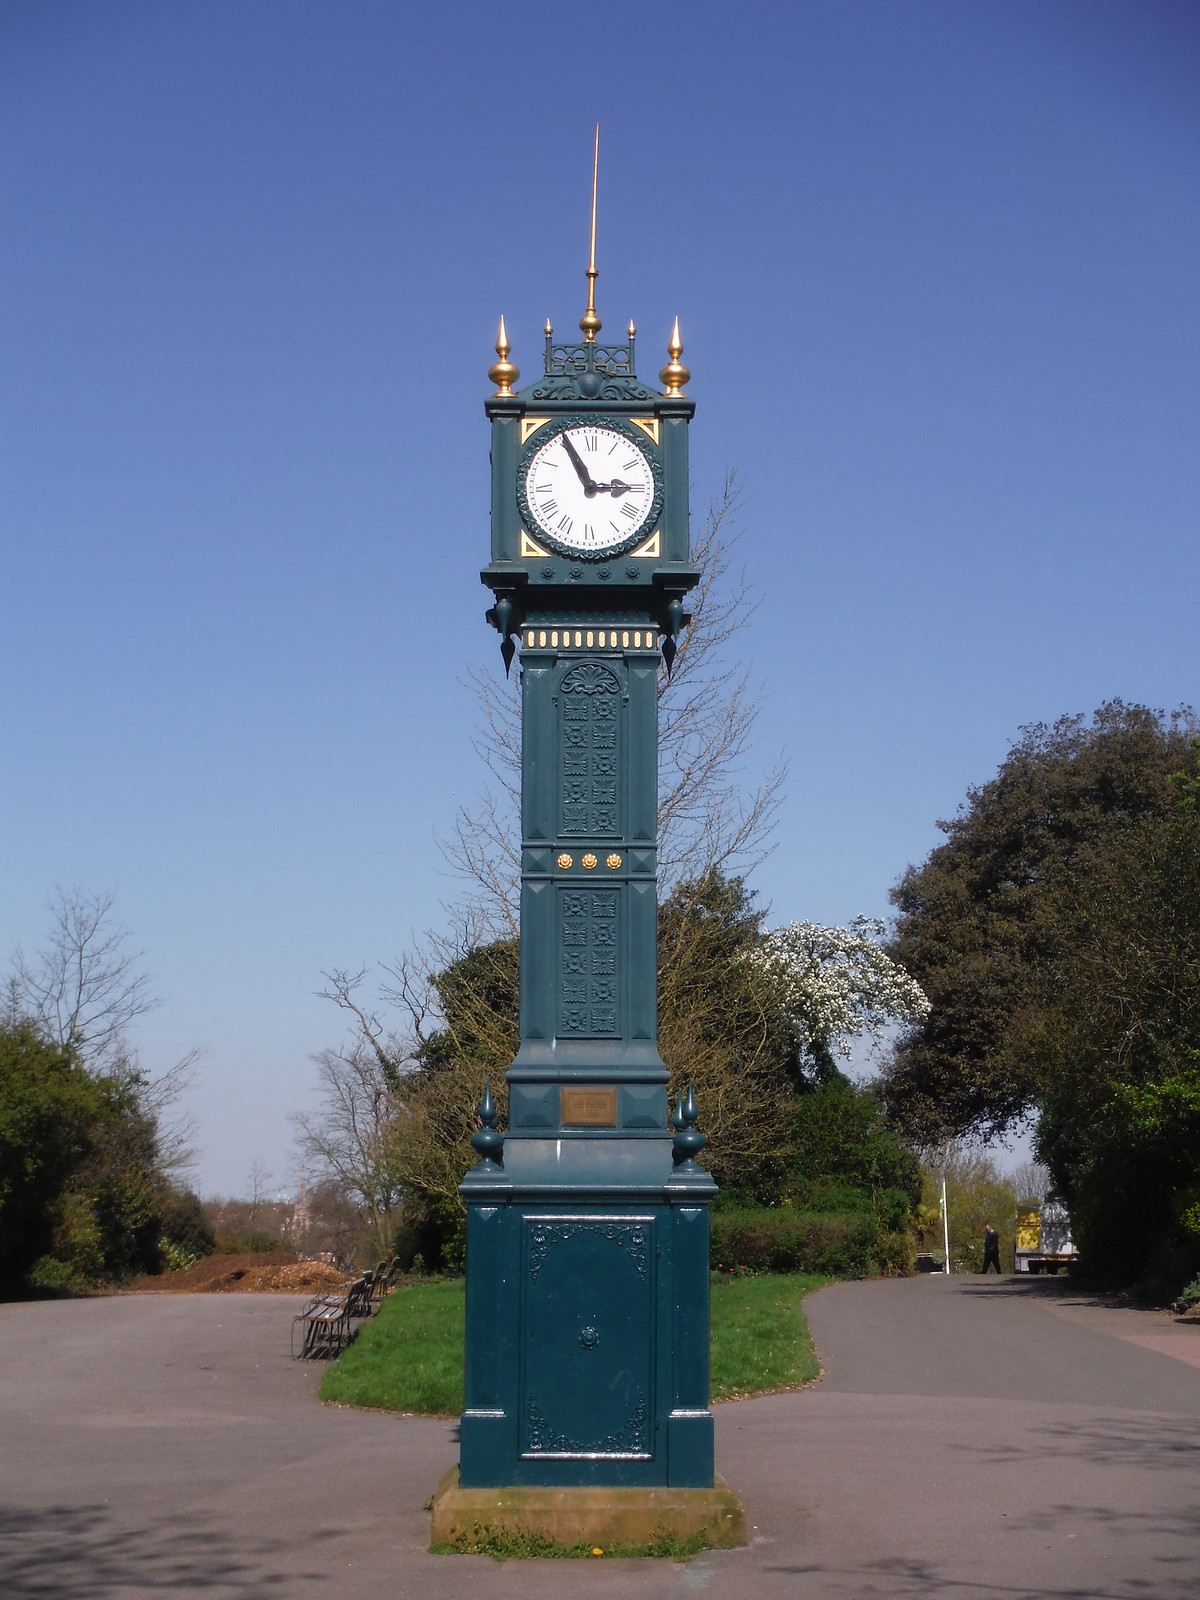 19th Century Clocktower, Brockwell Park SWC Short Walk 39 - Brockwell Park (Herne Hill Circular or to Brixton)